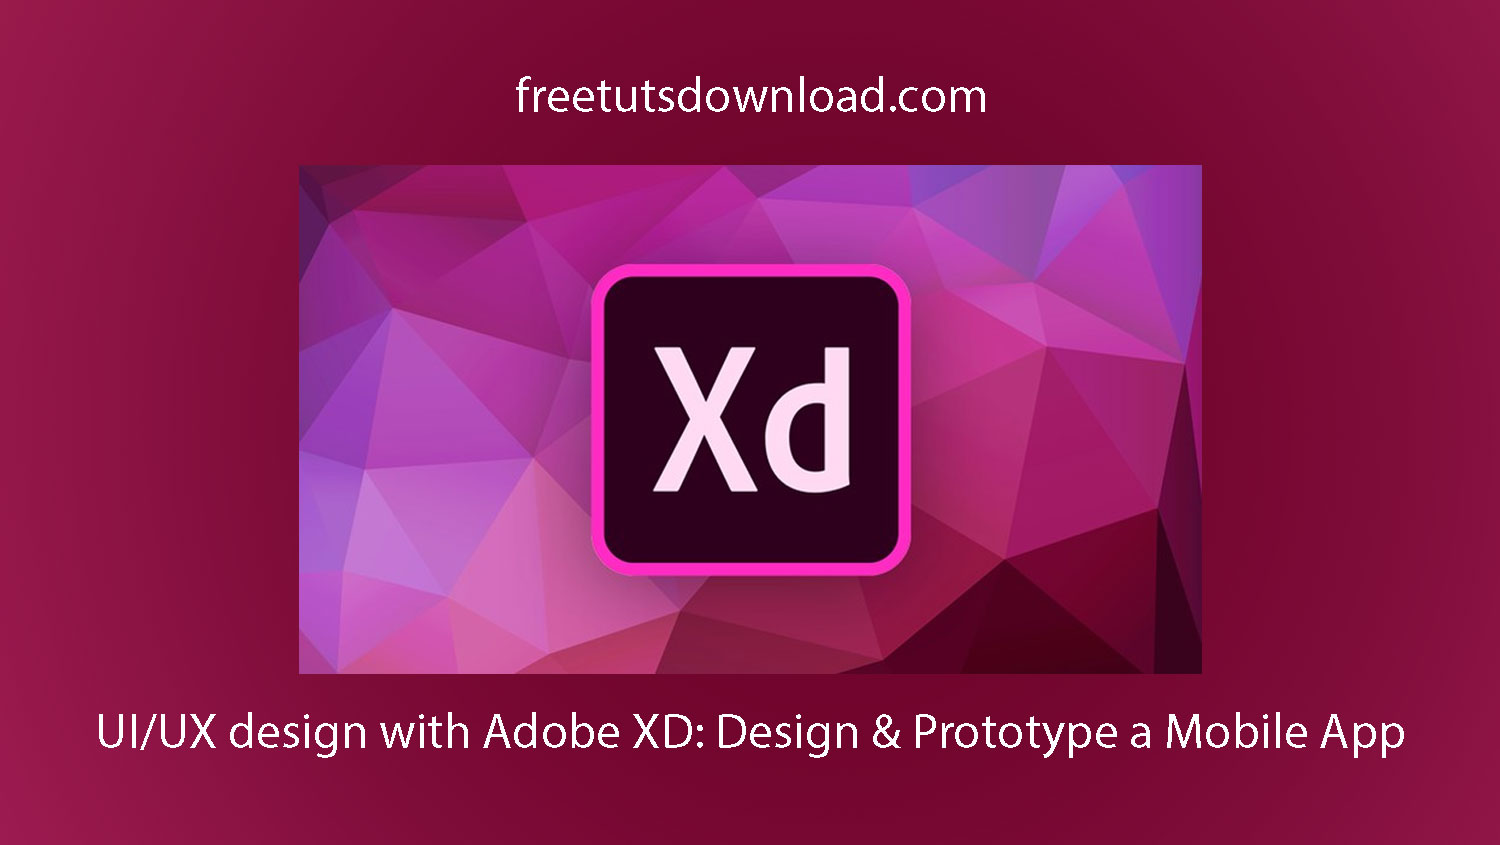 UI/UX design with Adobe XD: Design & Prototype a Mobile App